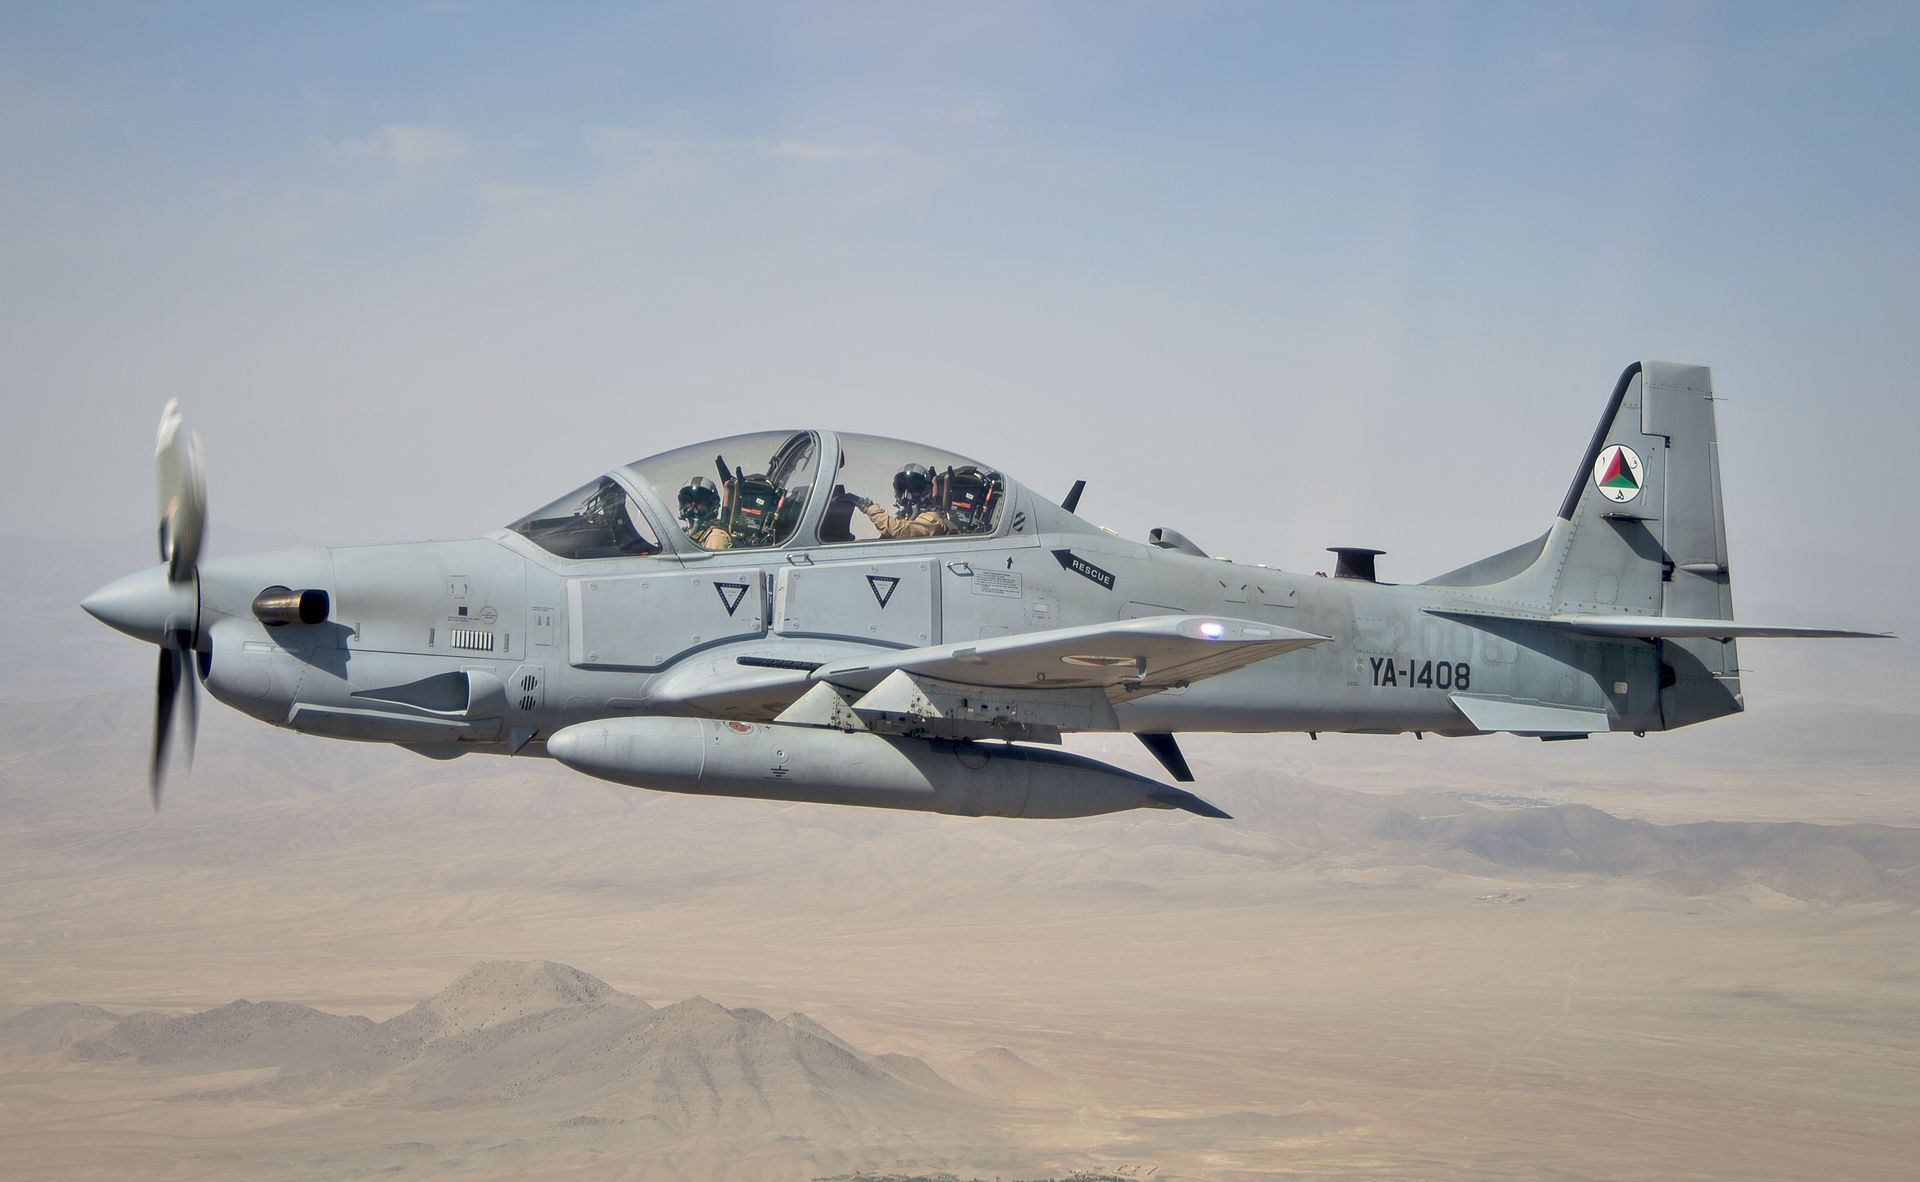 US Buys 6 Additional A-29 Warplanes For Afghan Air Force